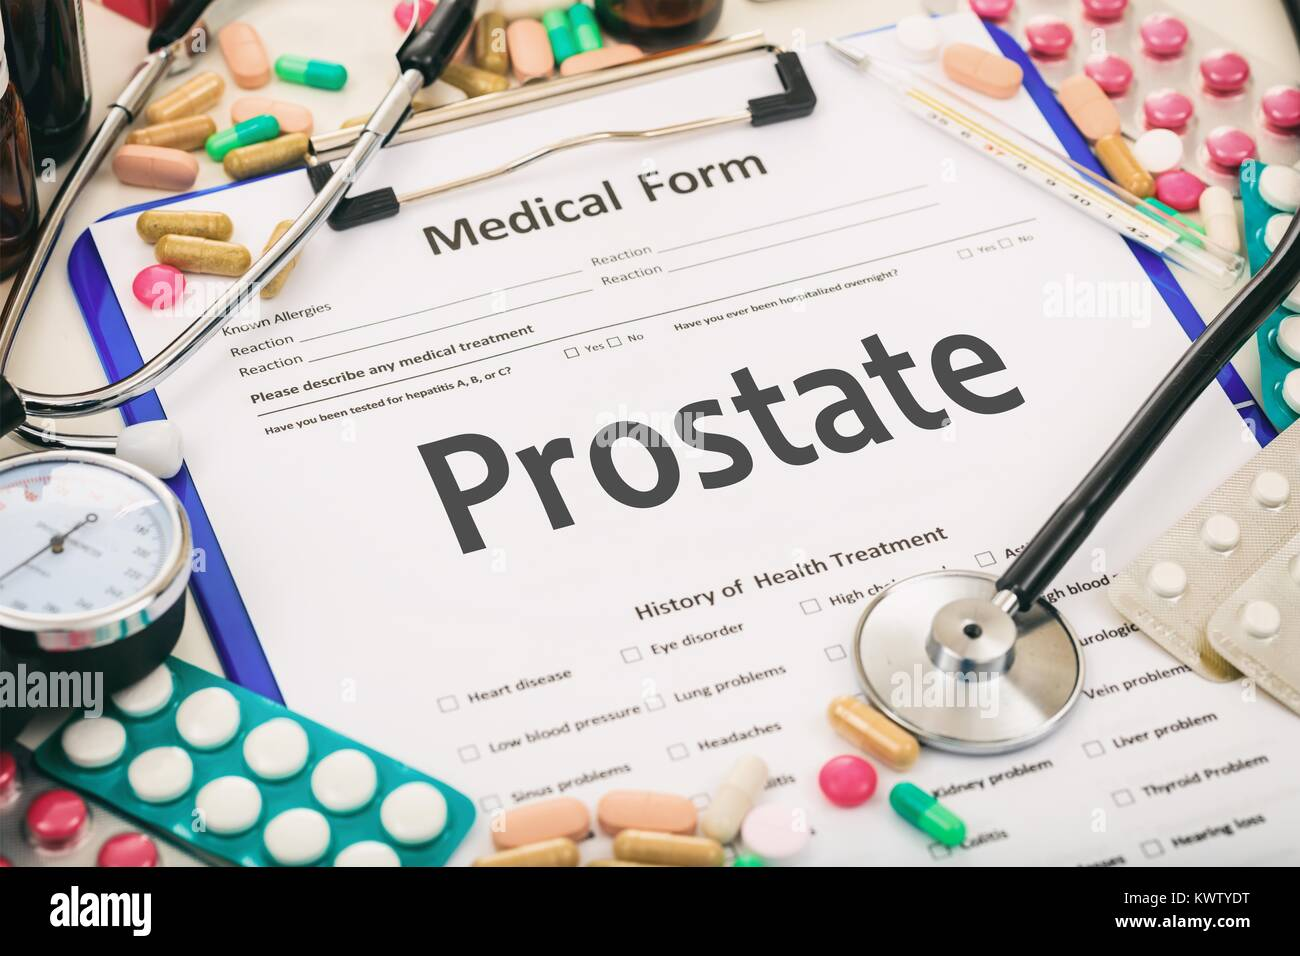 Medical form on a table, diagnosis prostate - Stock Image